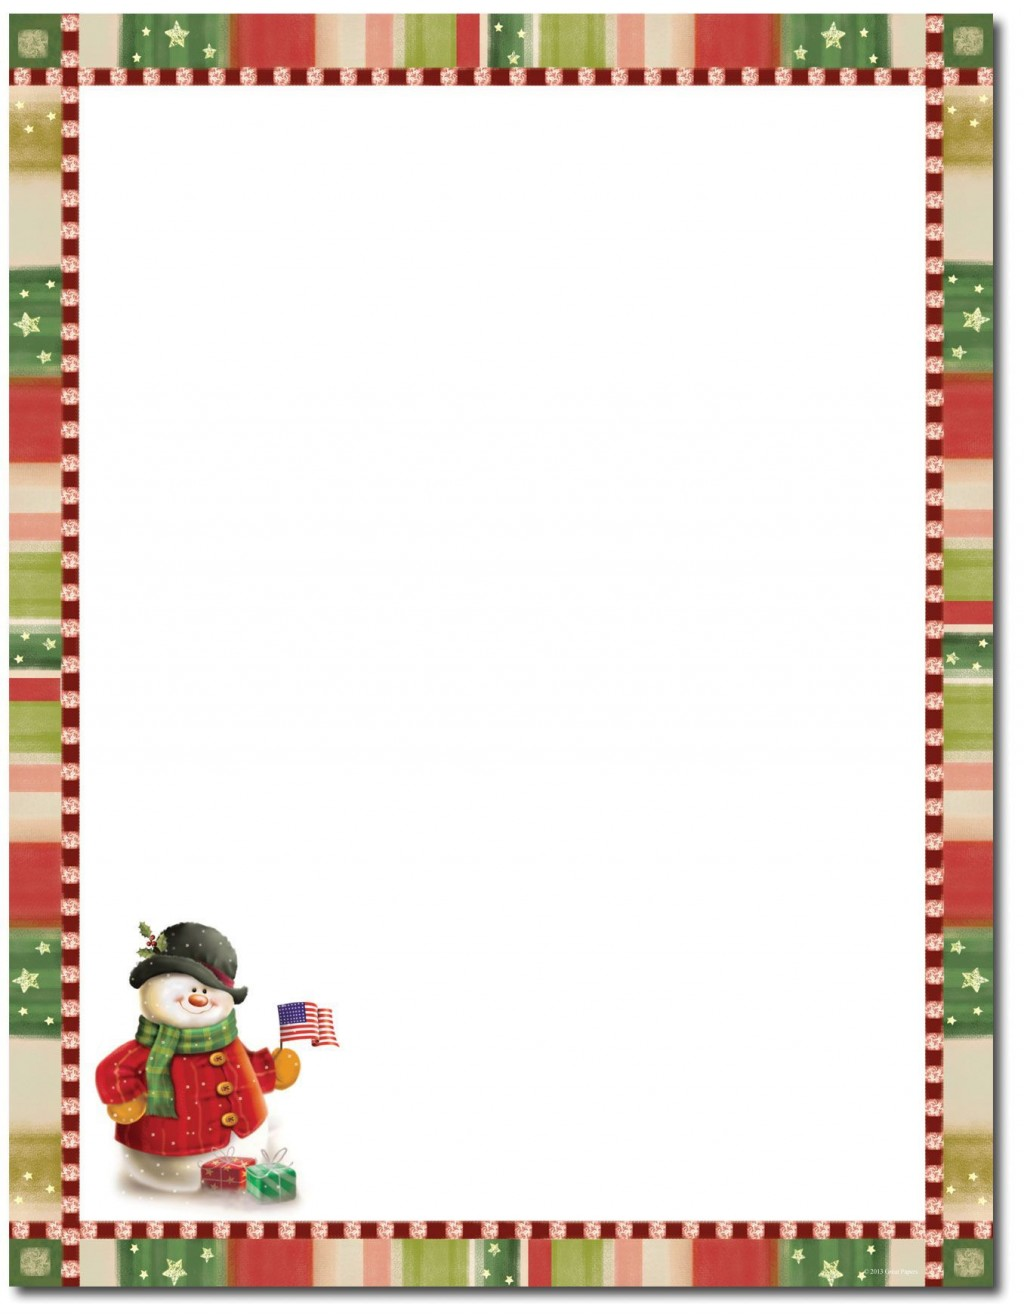 000 Awesome Free Holiday Stationery Template For Word Inspiration Large